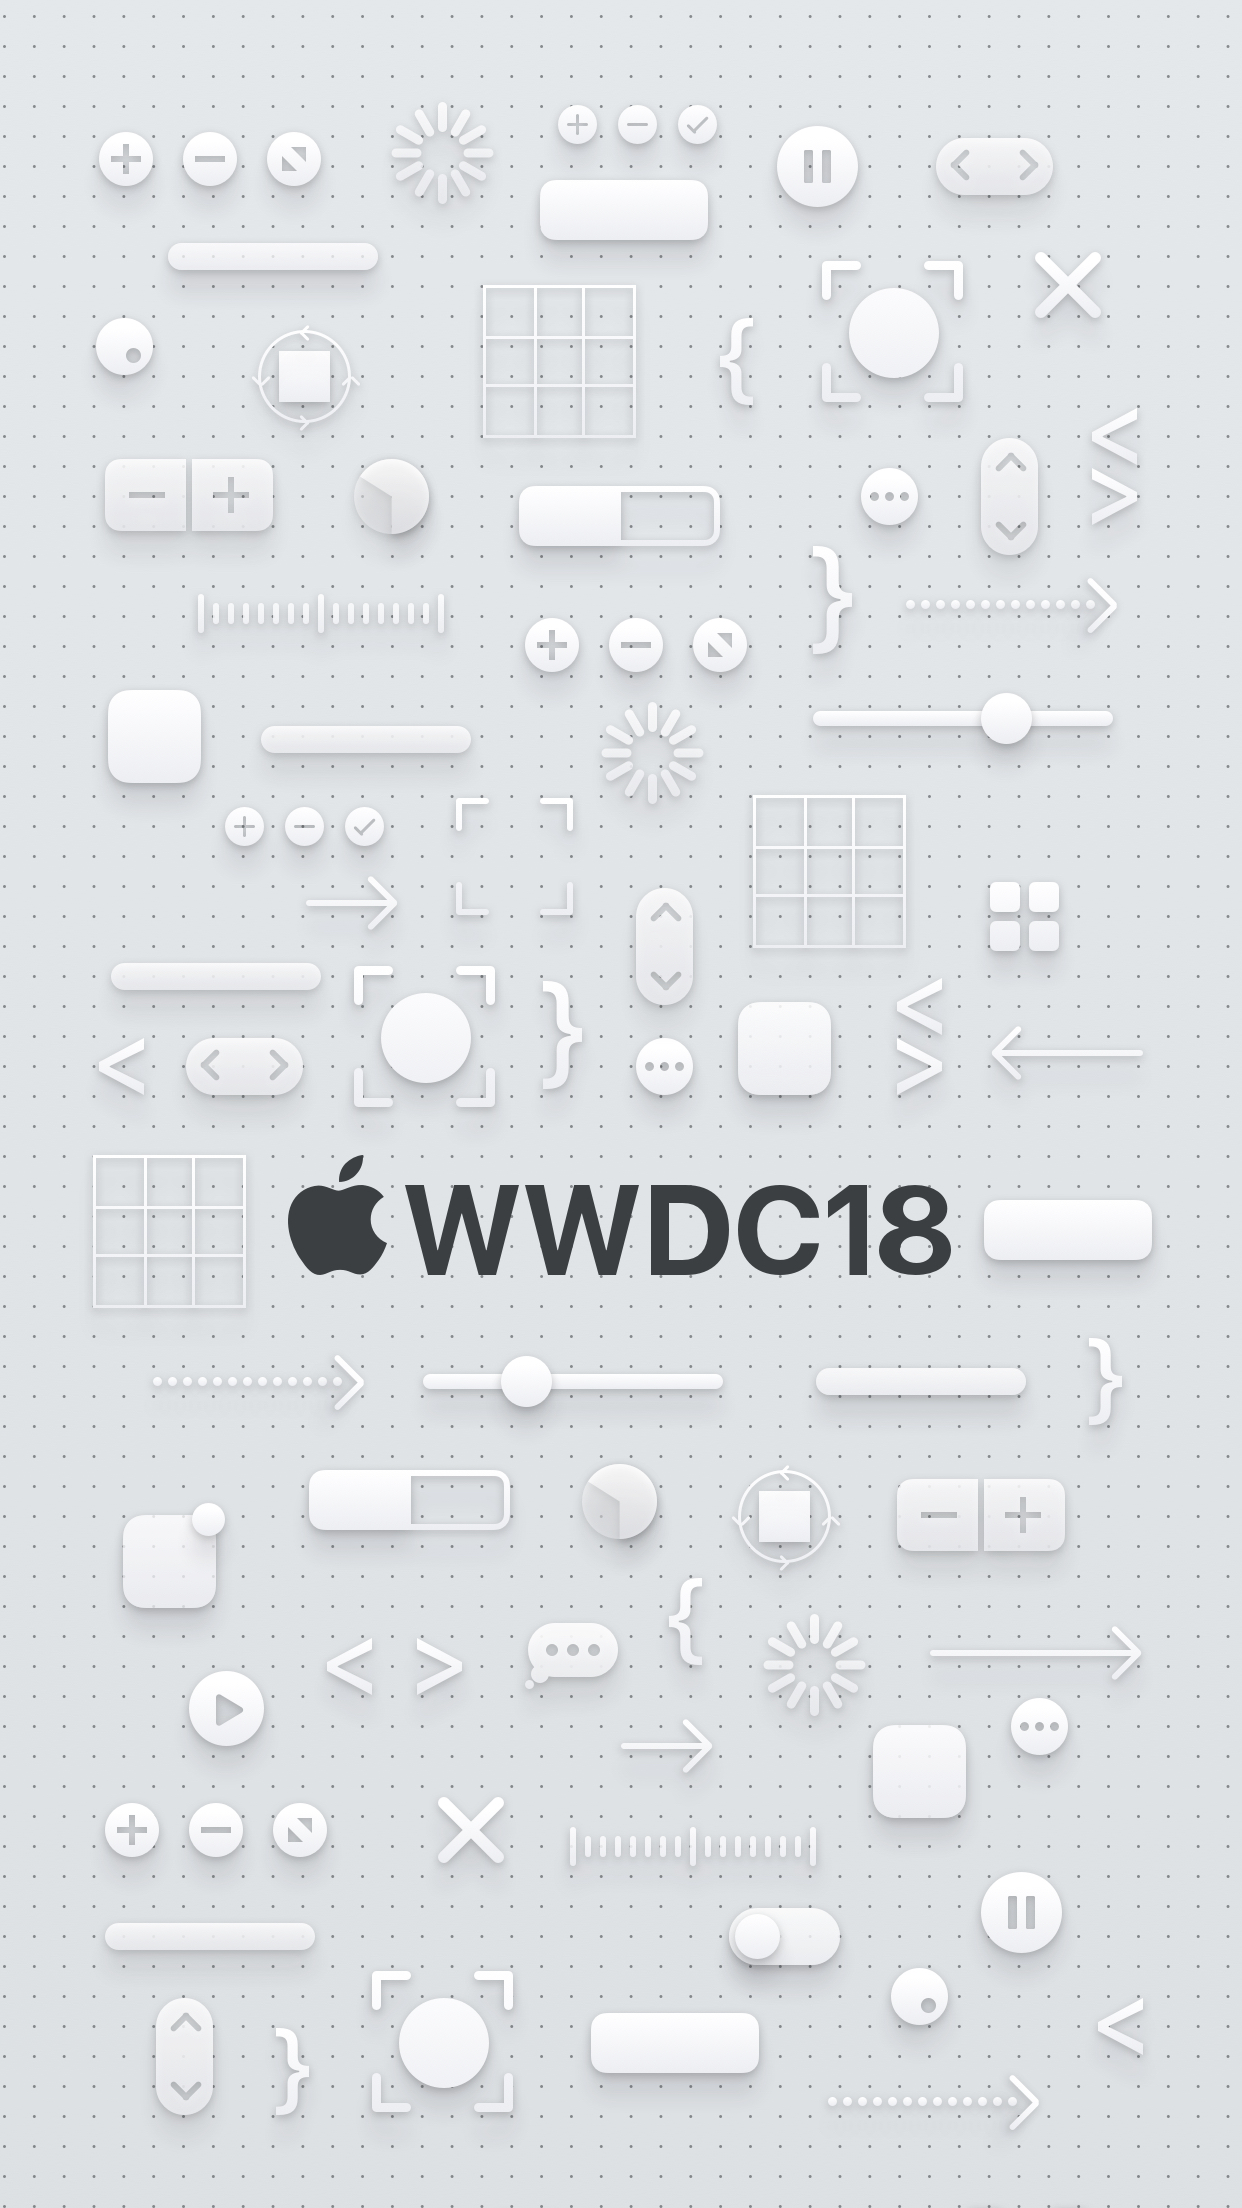 WWDC 2018 iPhone wallpapers